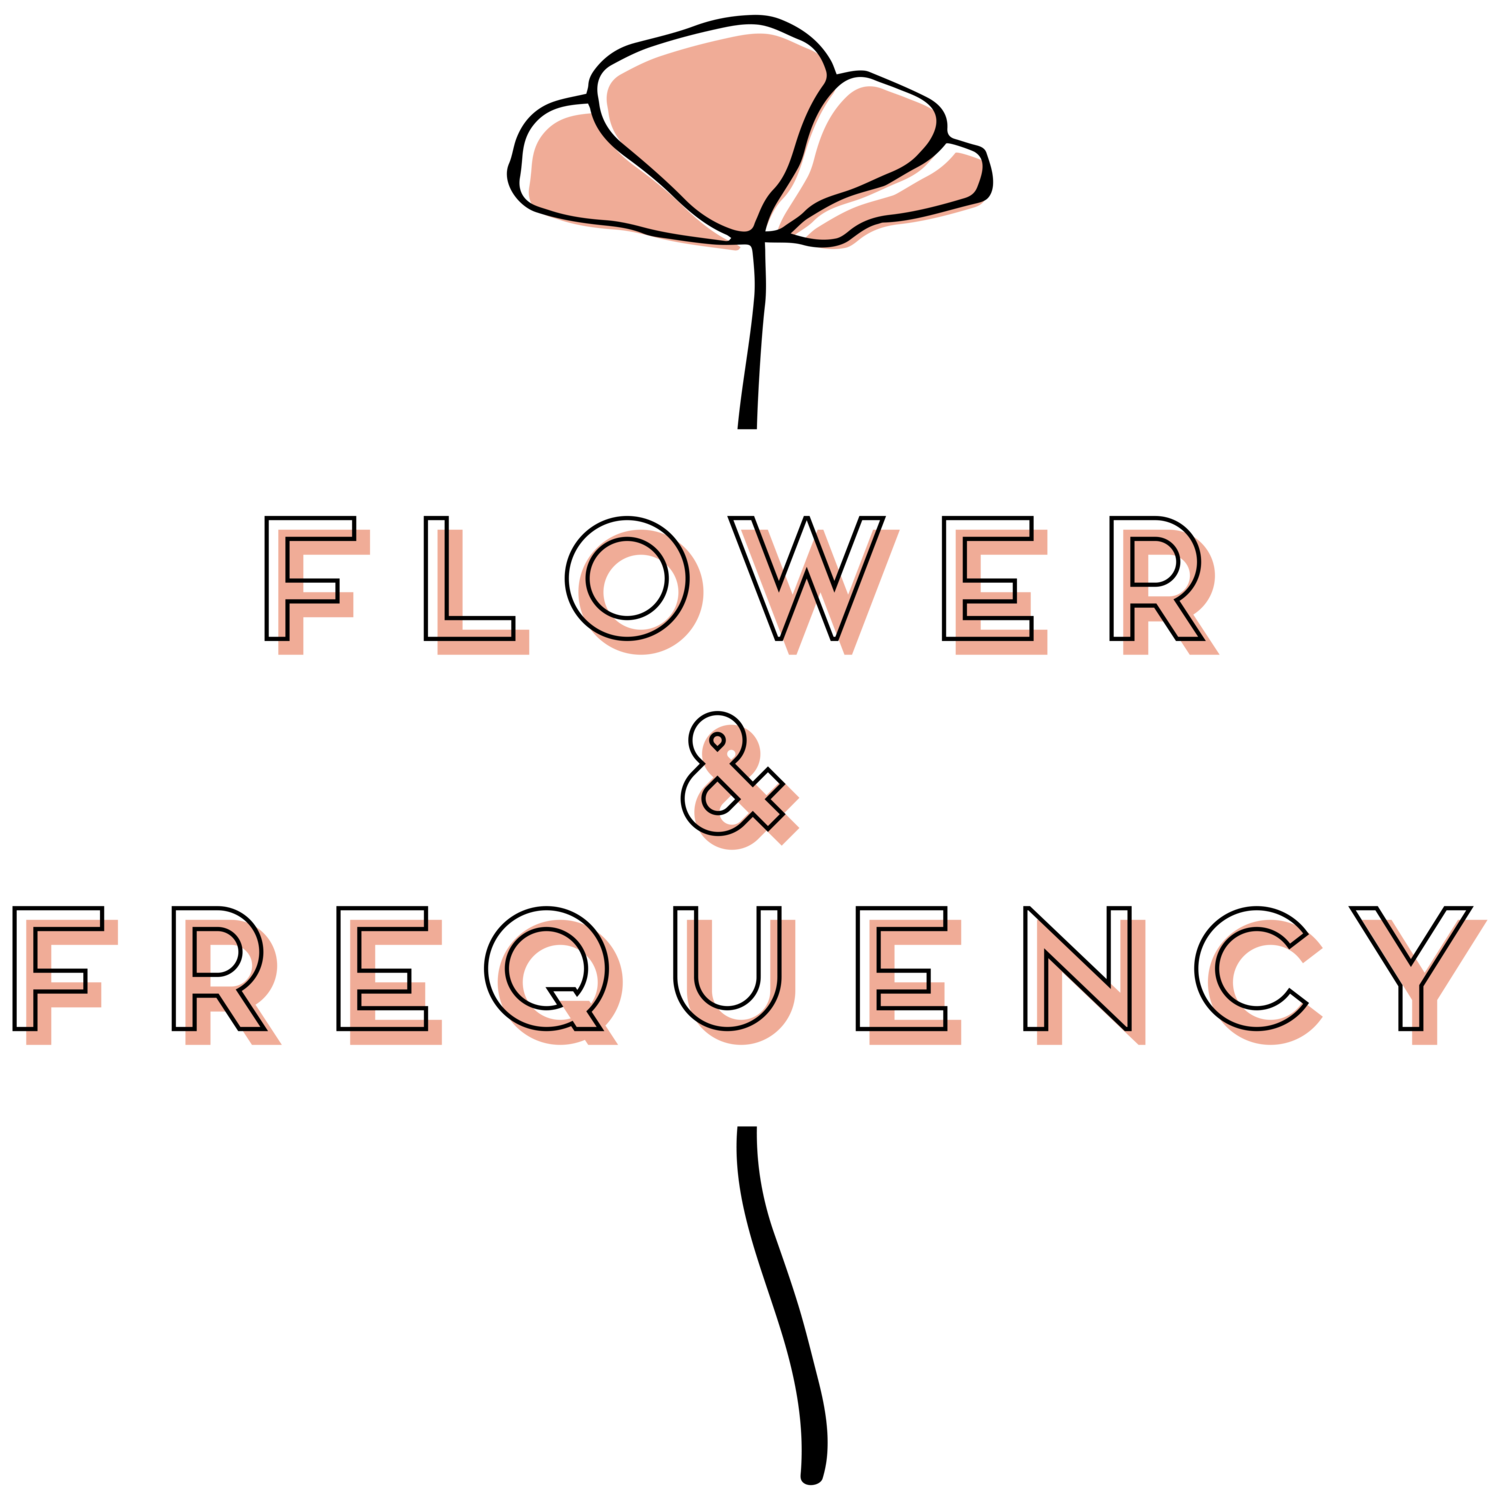 Flower & Frequency